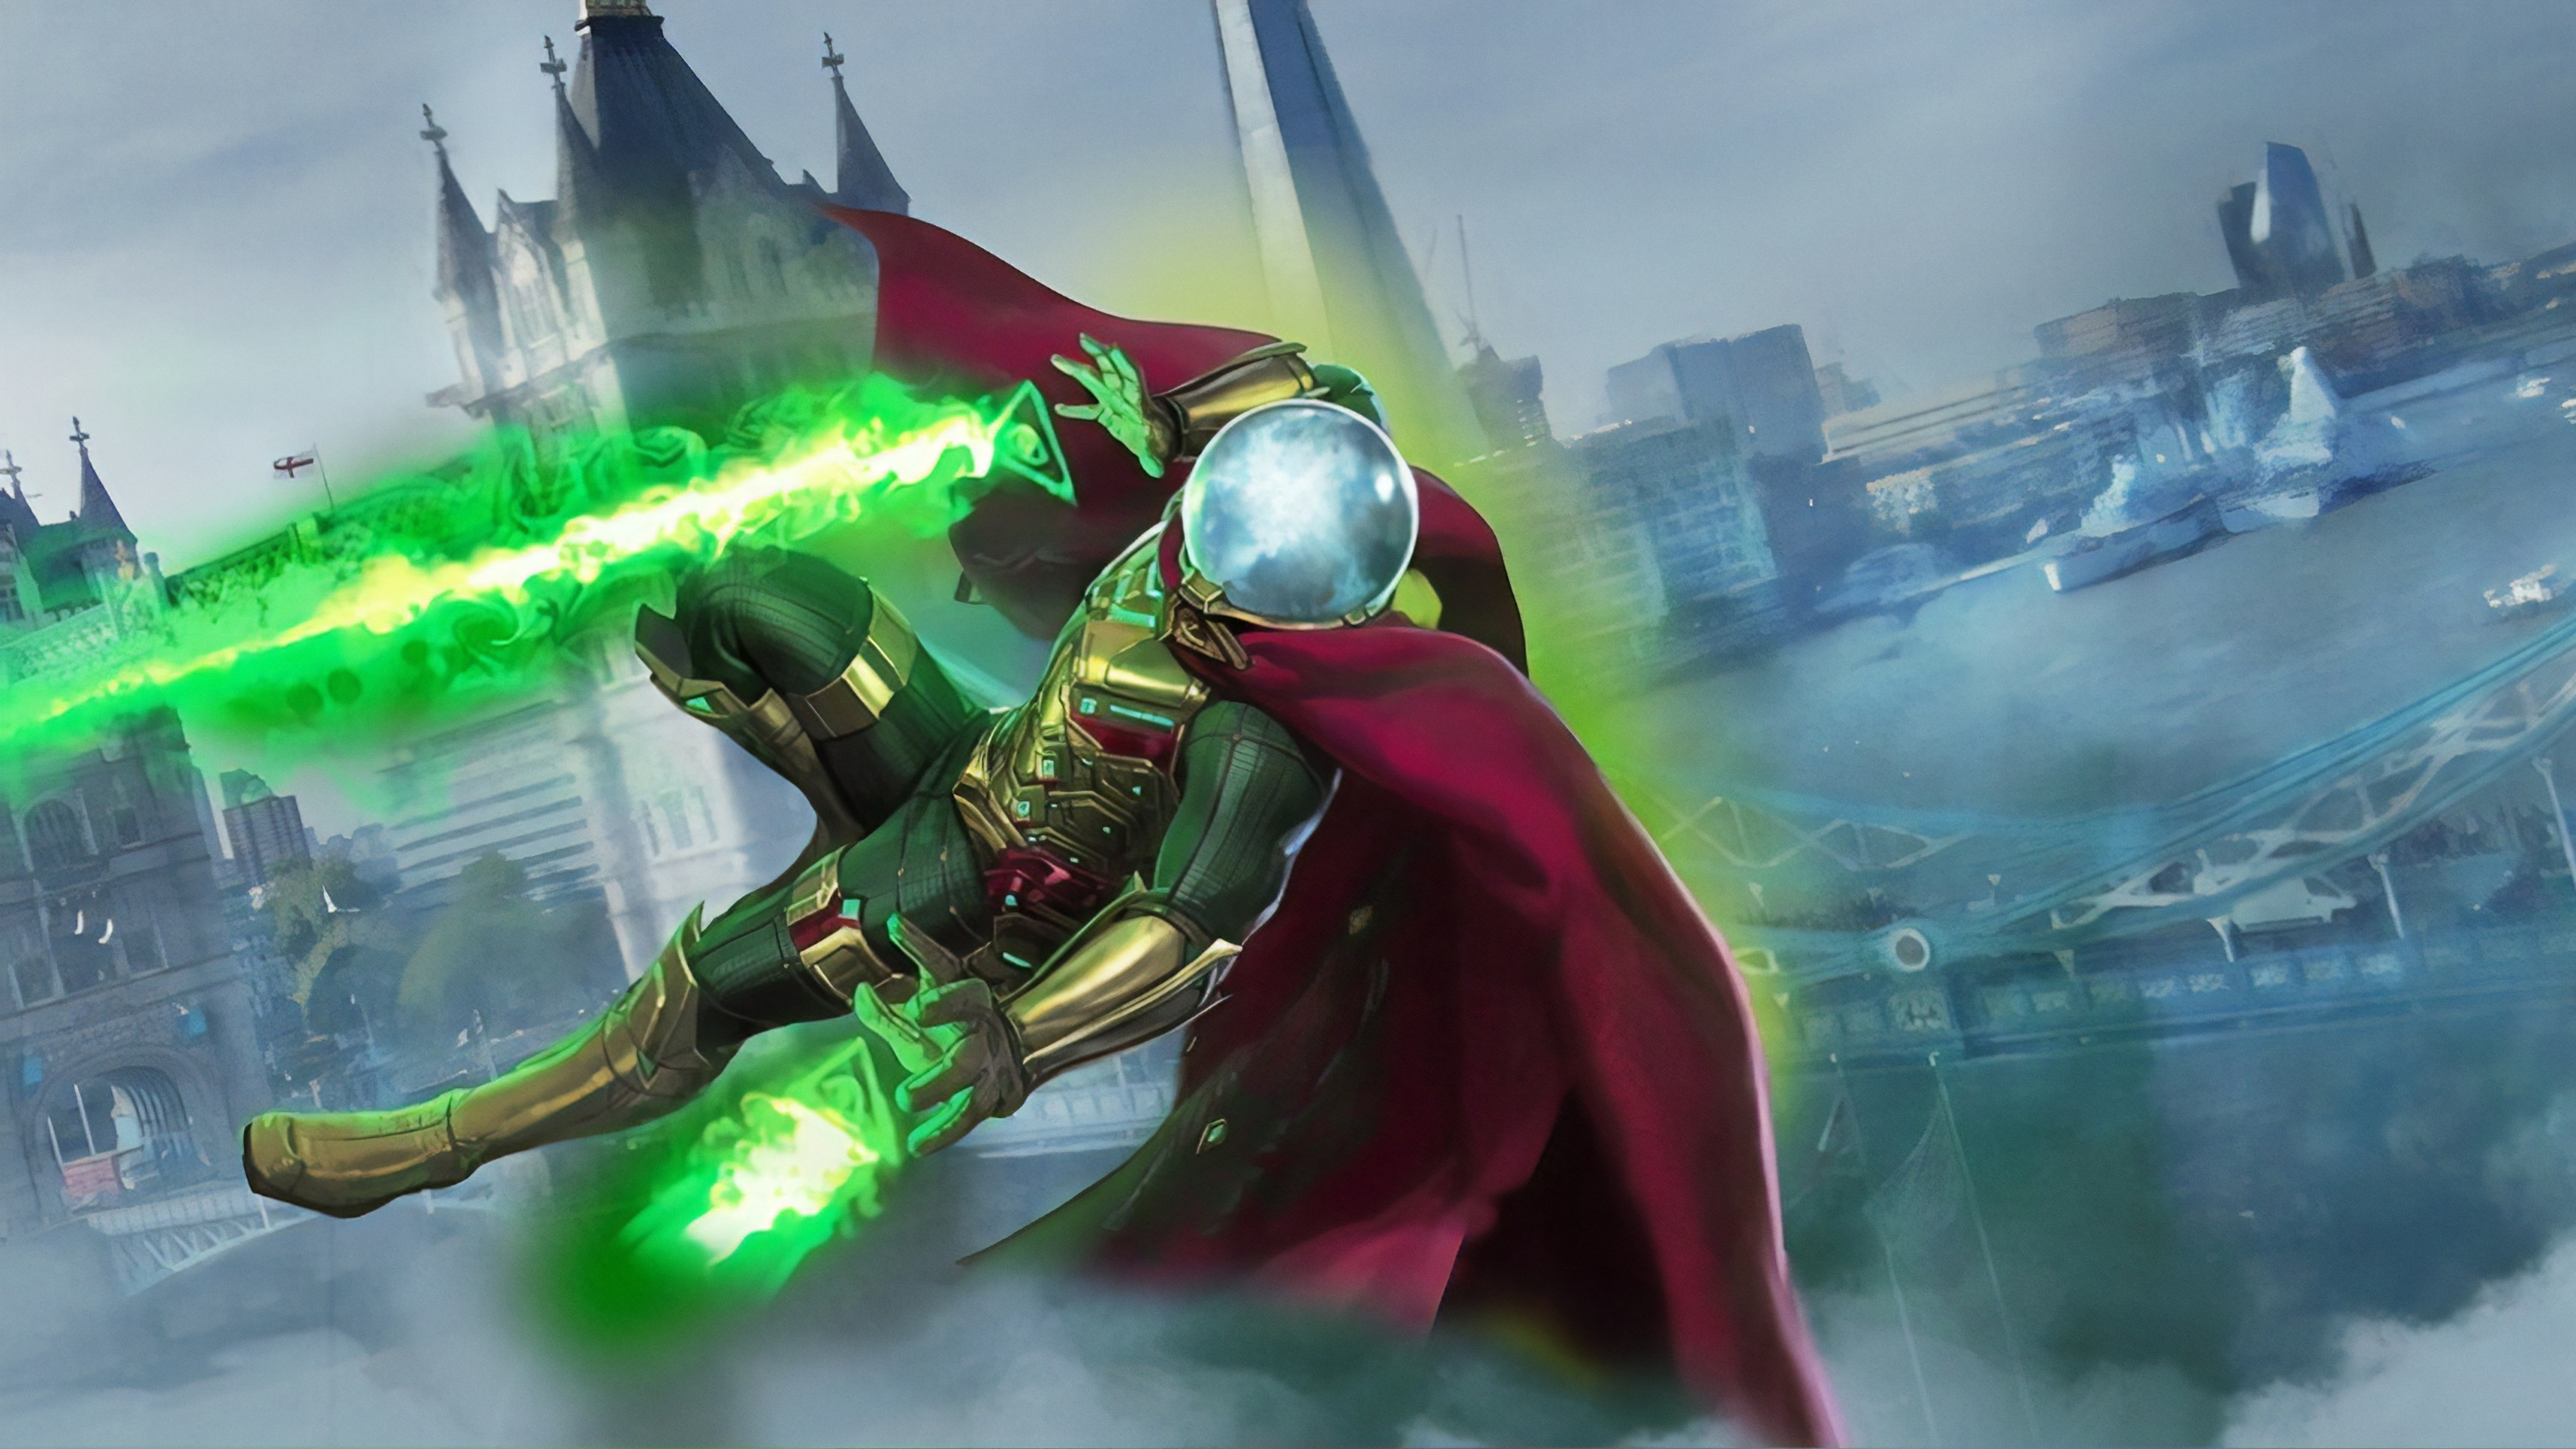 7680x4320 Mysterio In Spiderman Movie 8k Wallpaper Hd Movies 4k Wallpapers Images Photos And Background